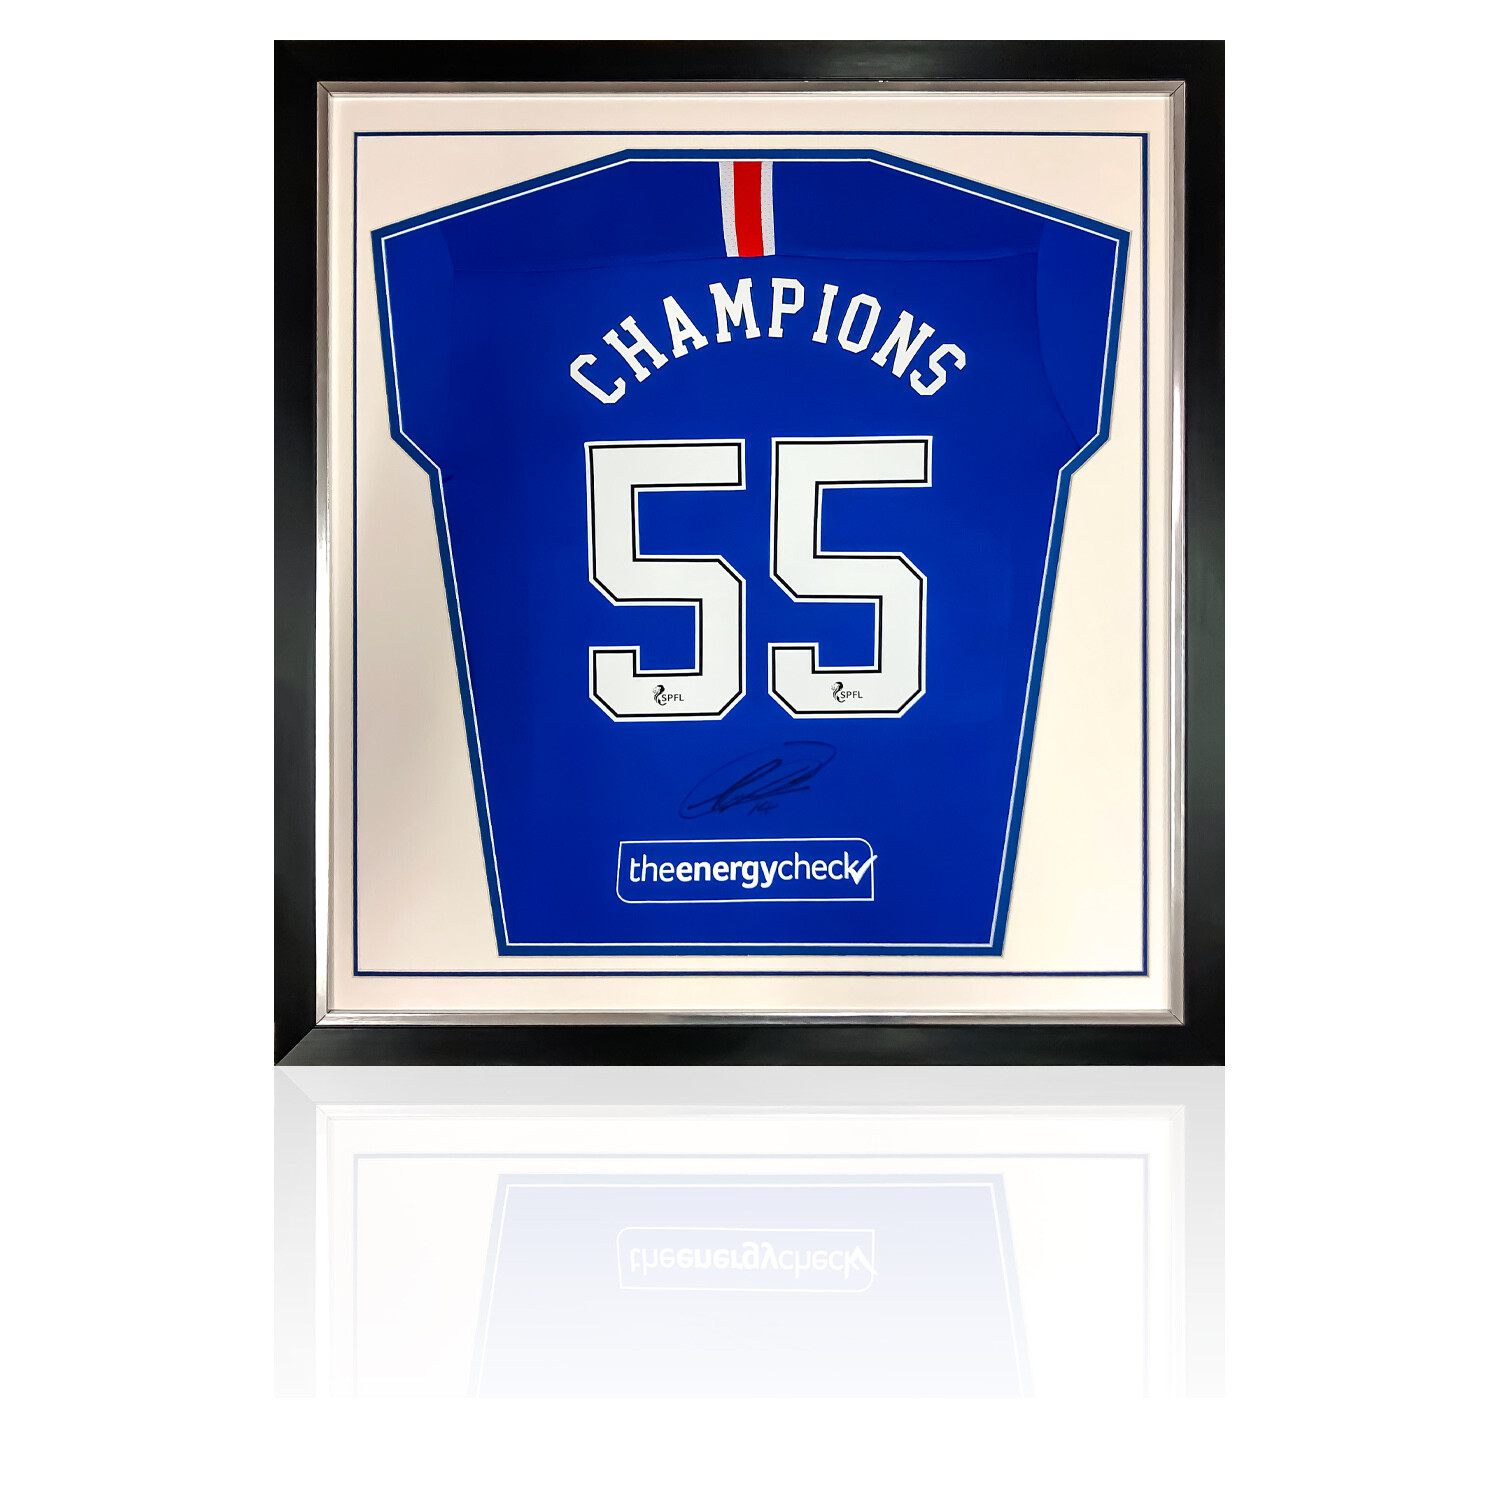 Rangers Champions 55 Signed by Ryan Kent